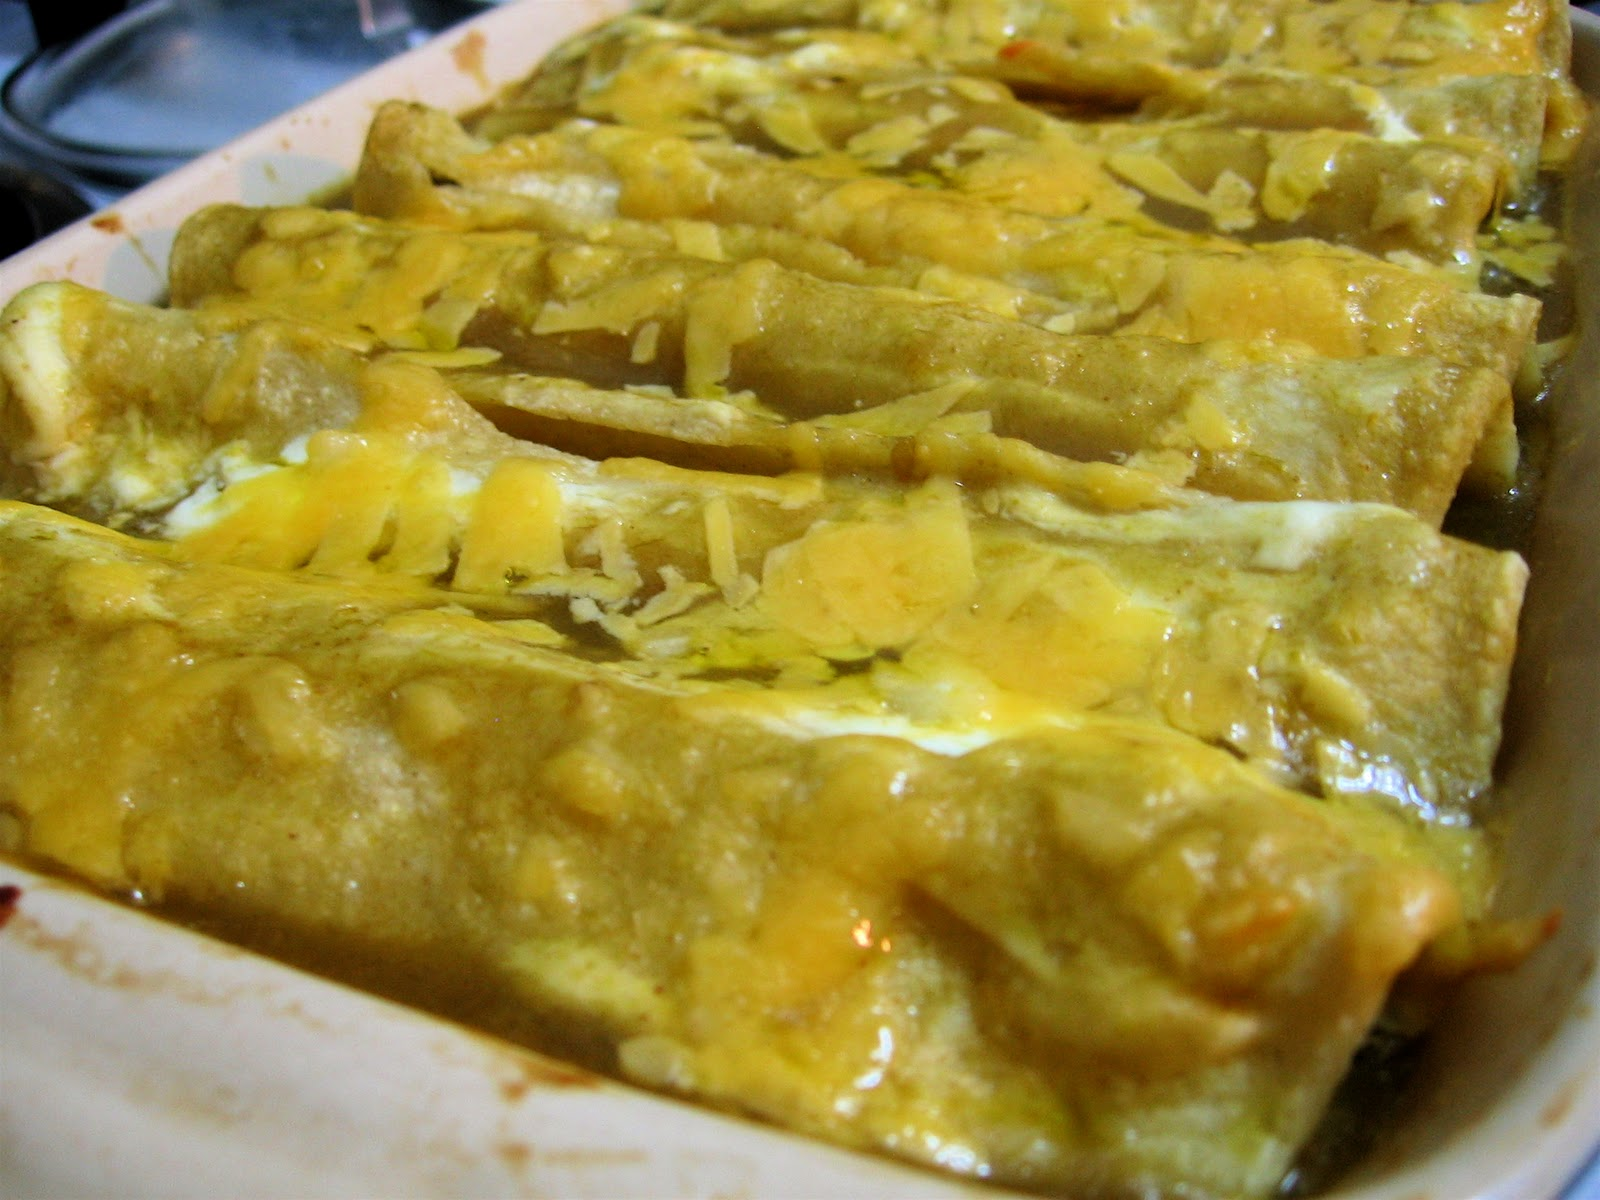 Recipes For Laughter: Enchiladas Suizas (Verdes)